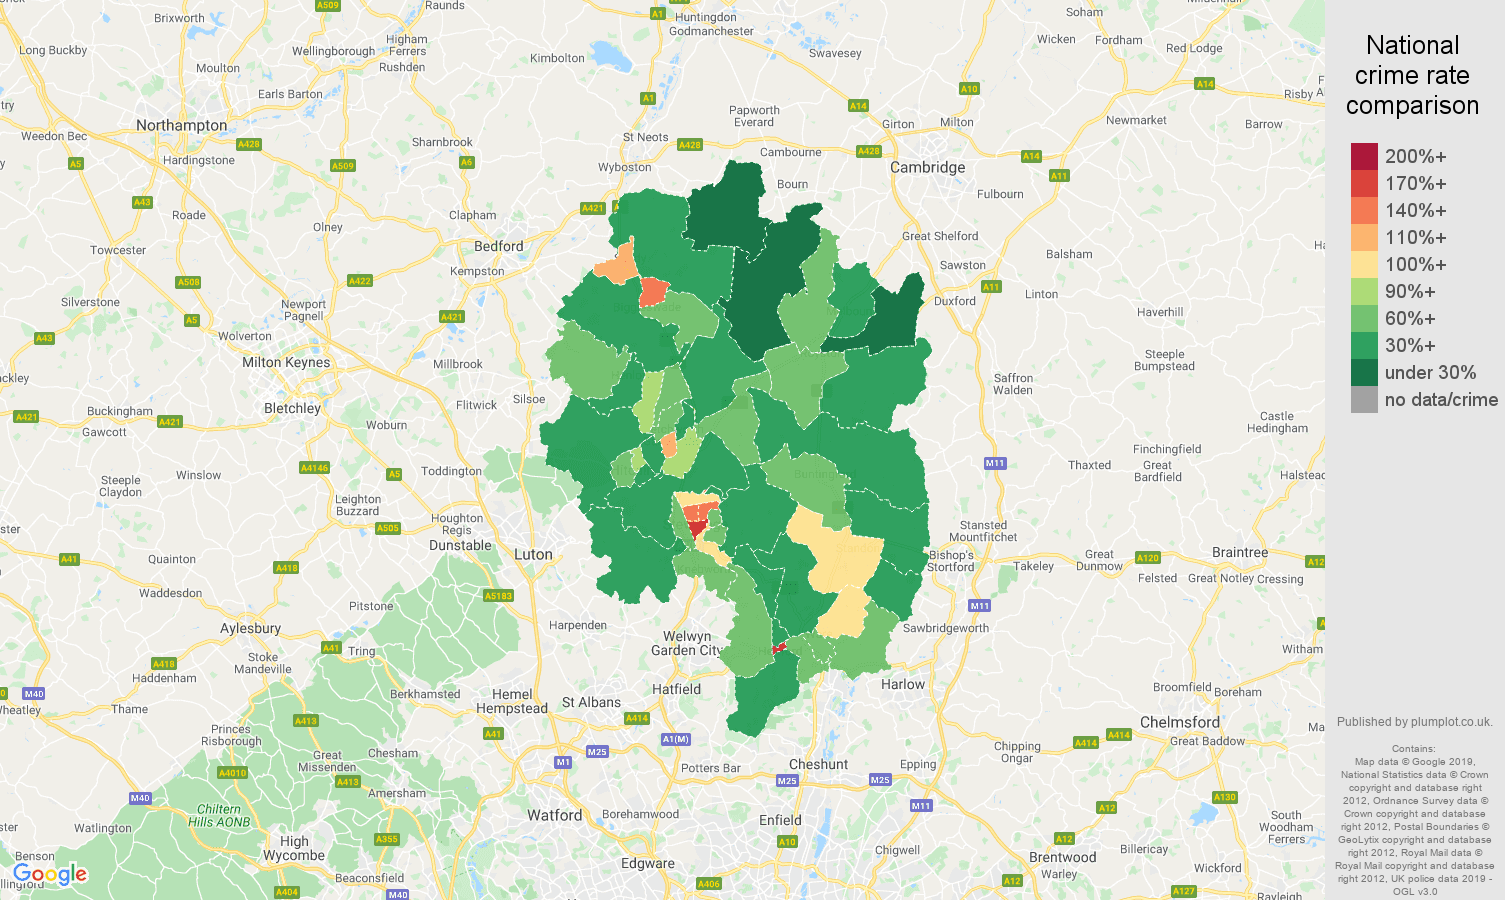 Stevenage public order crime rate comparison map